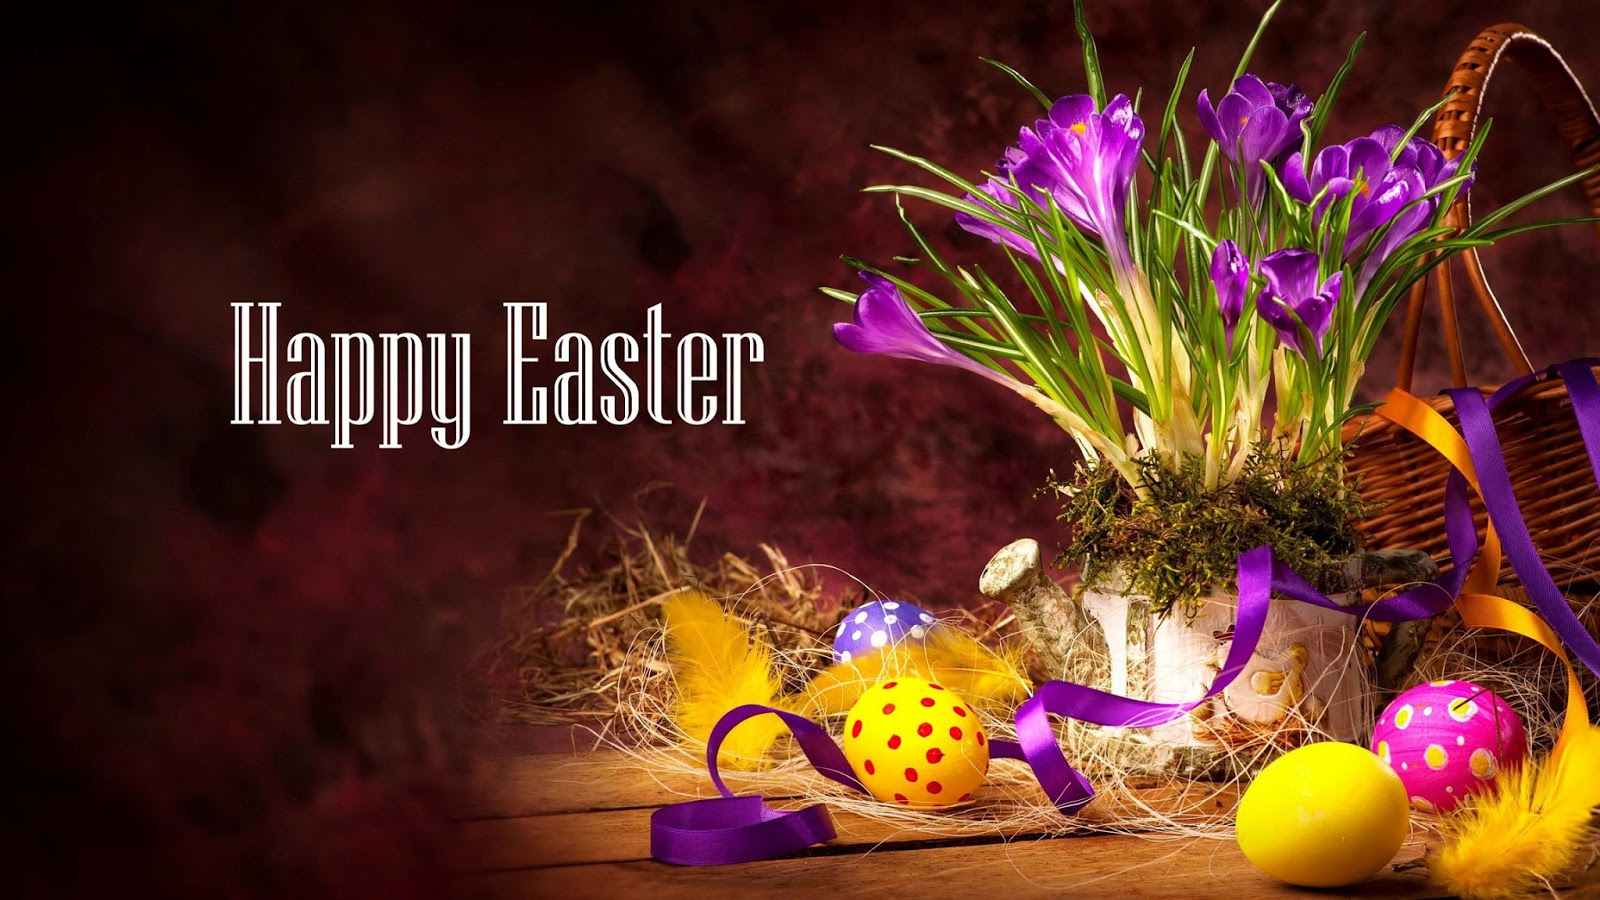 Happy Easter 2017 HD Images Free Download (3)